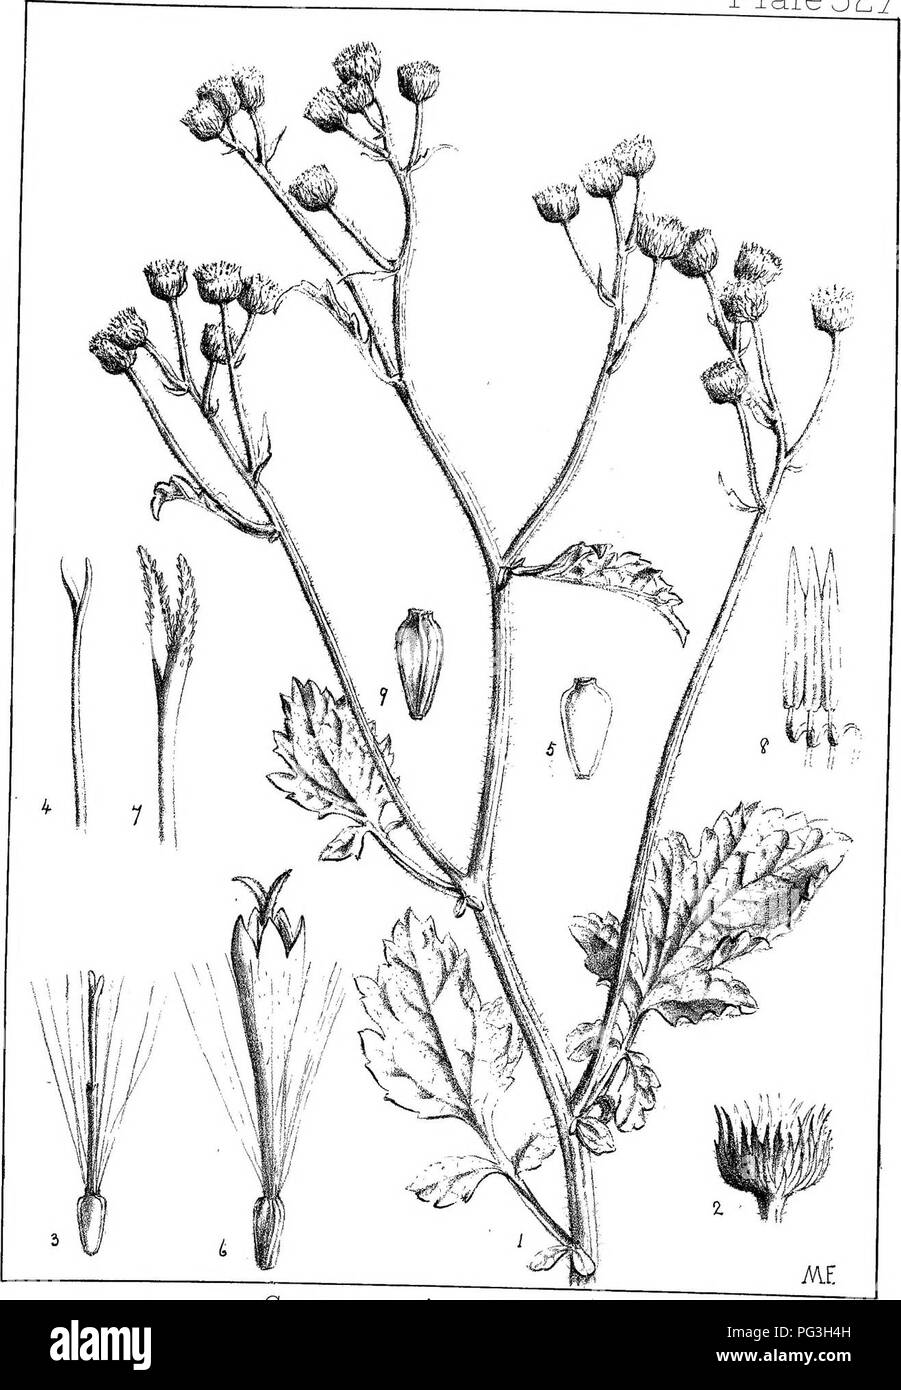 . Natal plants : Descriptions and figures of Natal indigenous plants, with notes on their distribution, economic value, native names, &c., / by J. Medley Wood and Maurice S. Evans. Published under the auspices of Natal Government and Durban Botanic Society. Botany. Plale527. Conyza mcisa, Ail^. Please note that these images are extracted from scanned page images that may have been digitally enhanced for readability - coloration and appearance of these illustrations may not perfectly resemble the original work.. Wood, John Medley, 1827-1914; Evans, Maurice S. (Maurice Smethurst), 1854-1920; - Stock Image